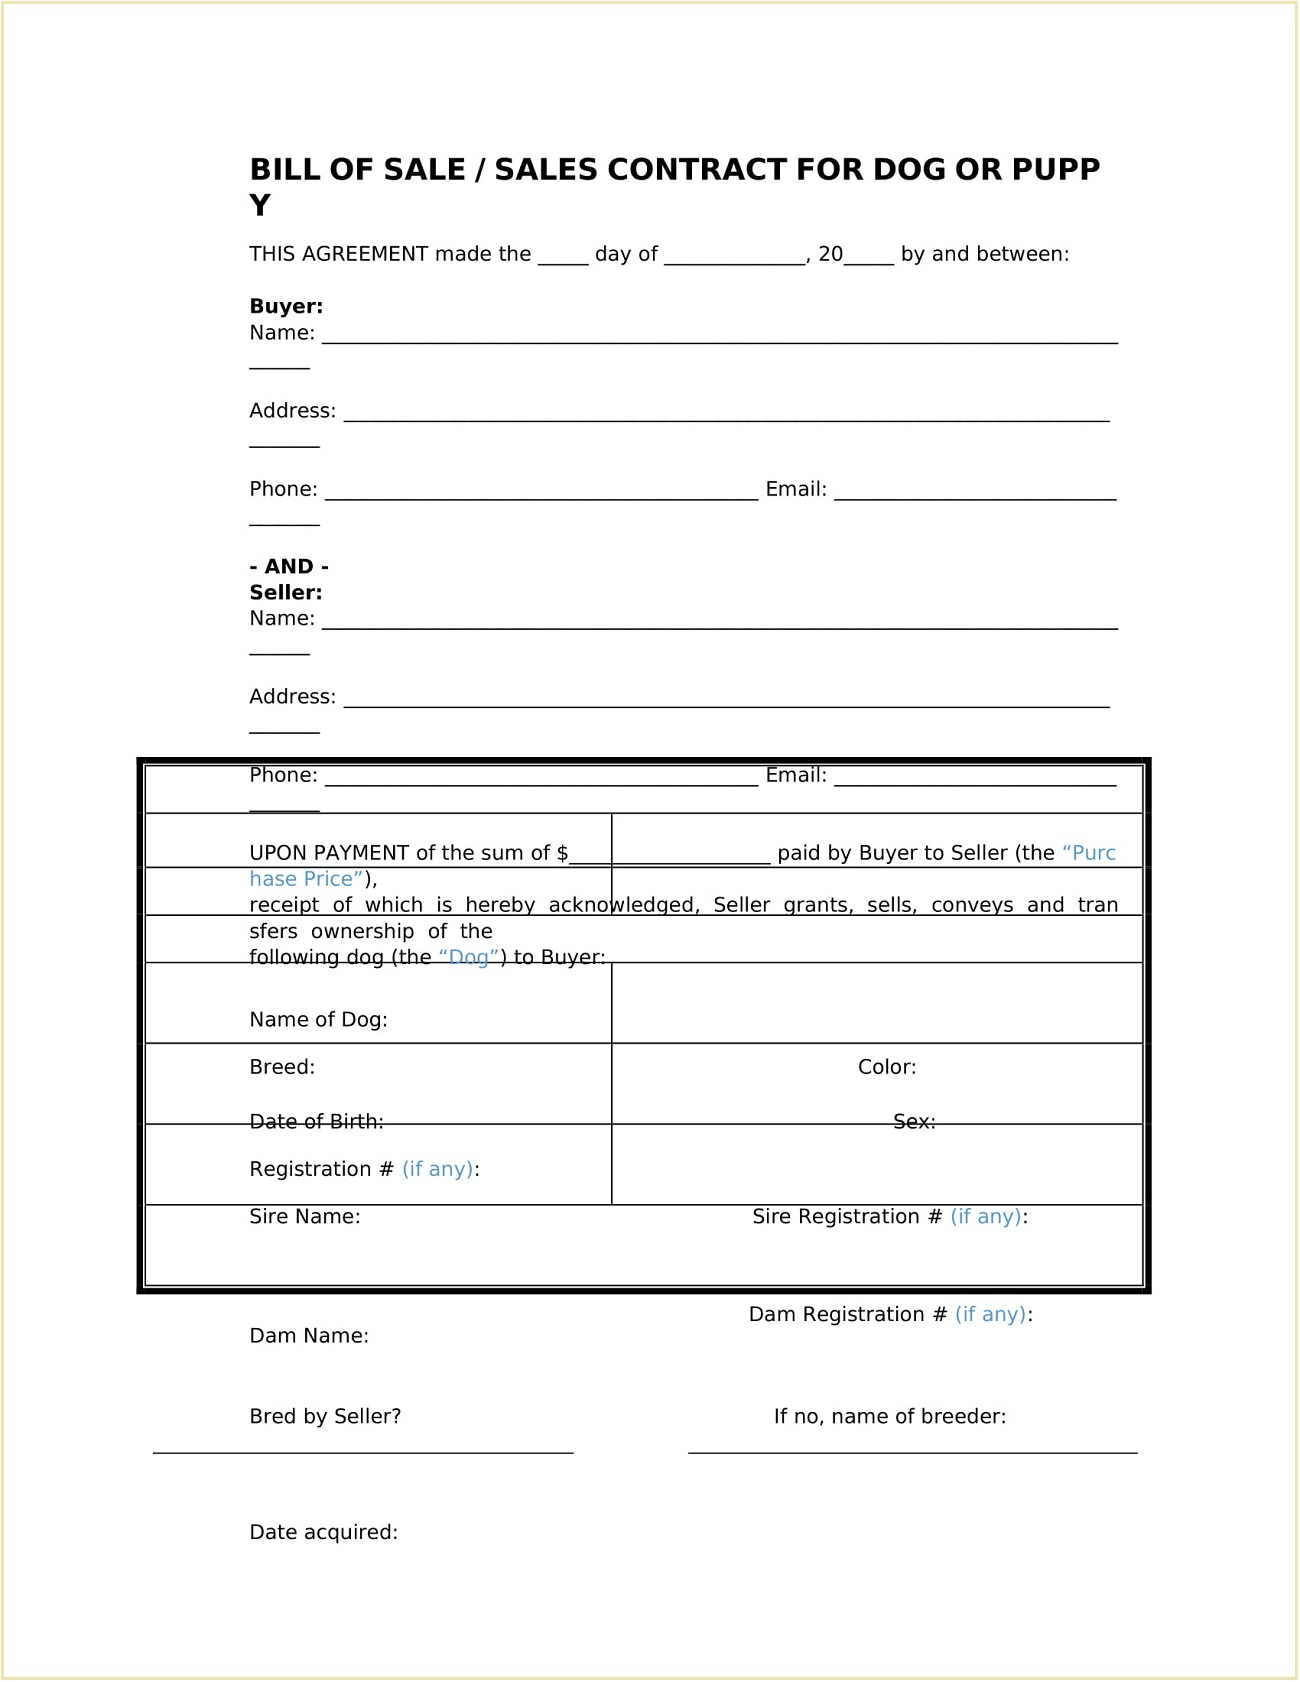 Puppy Bill of Sale Form Word Doc Template